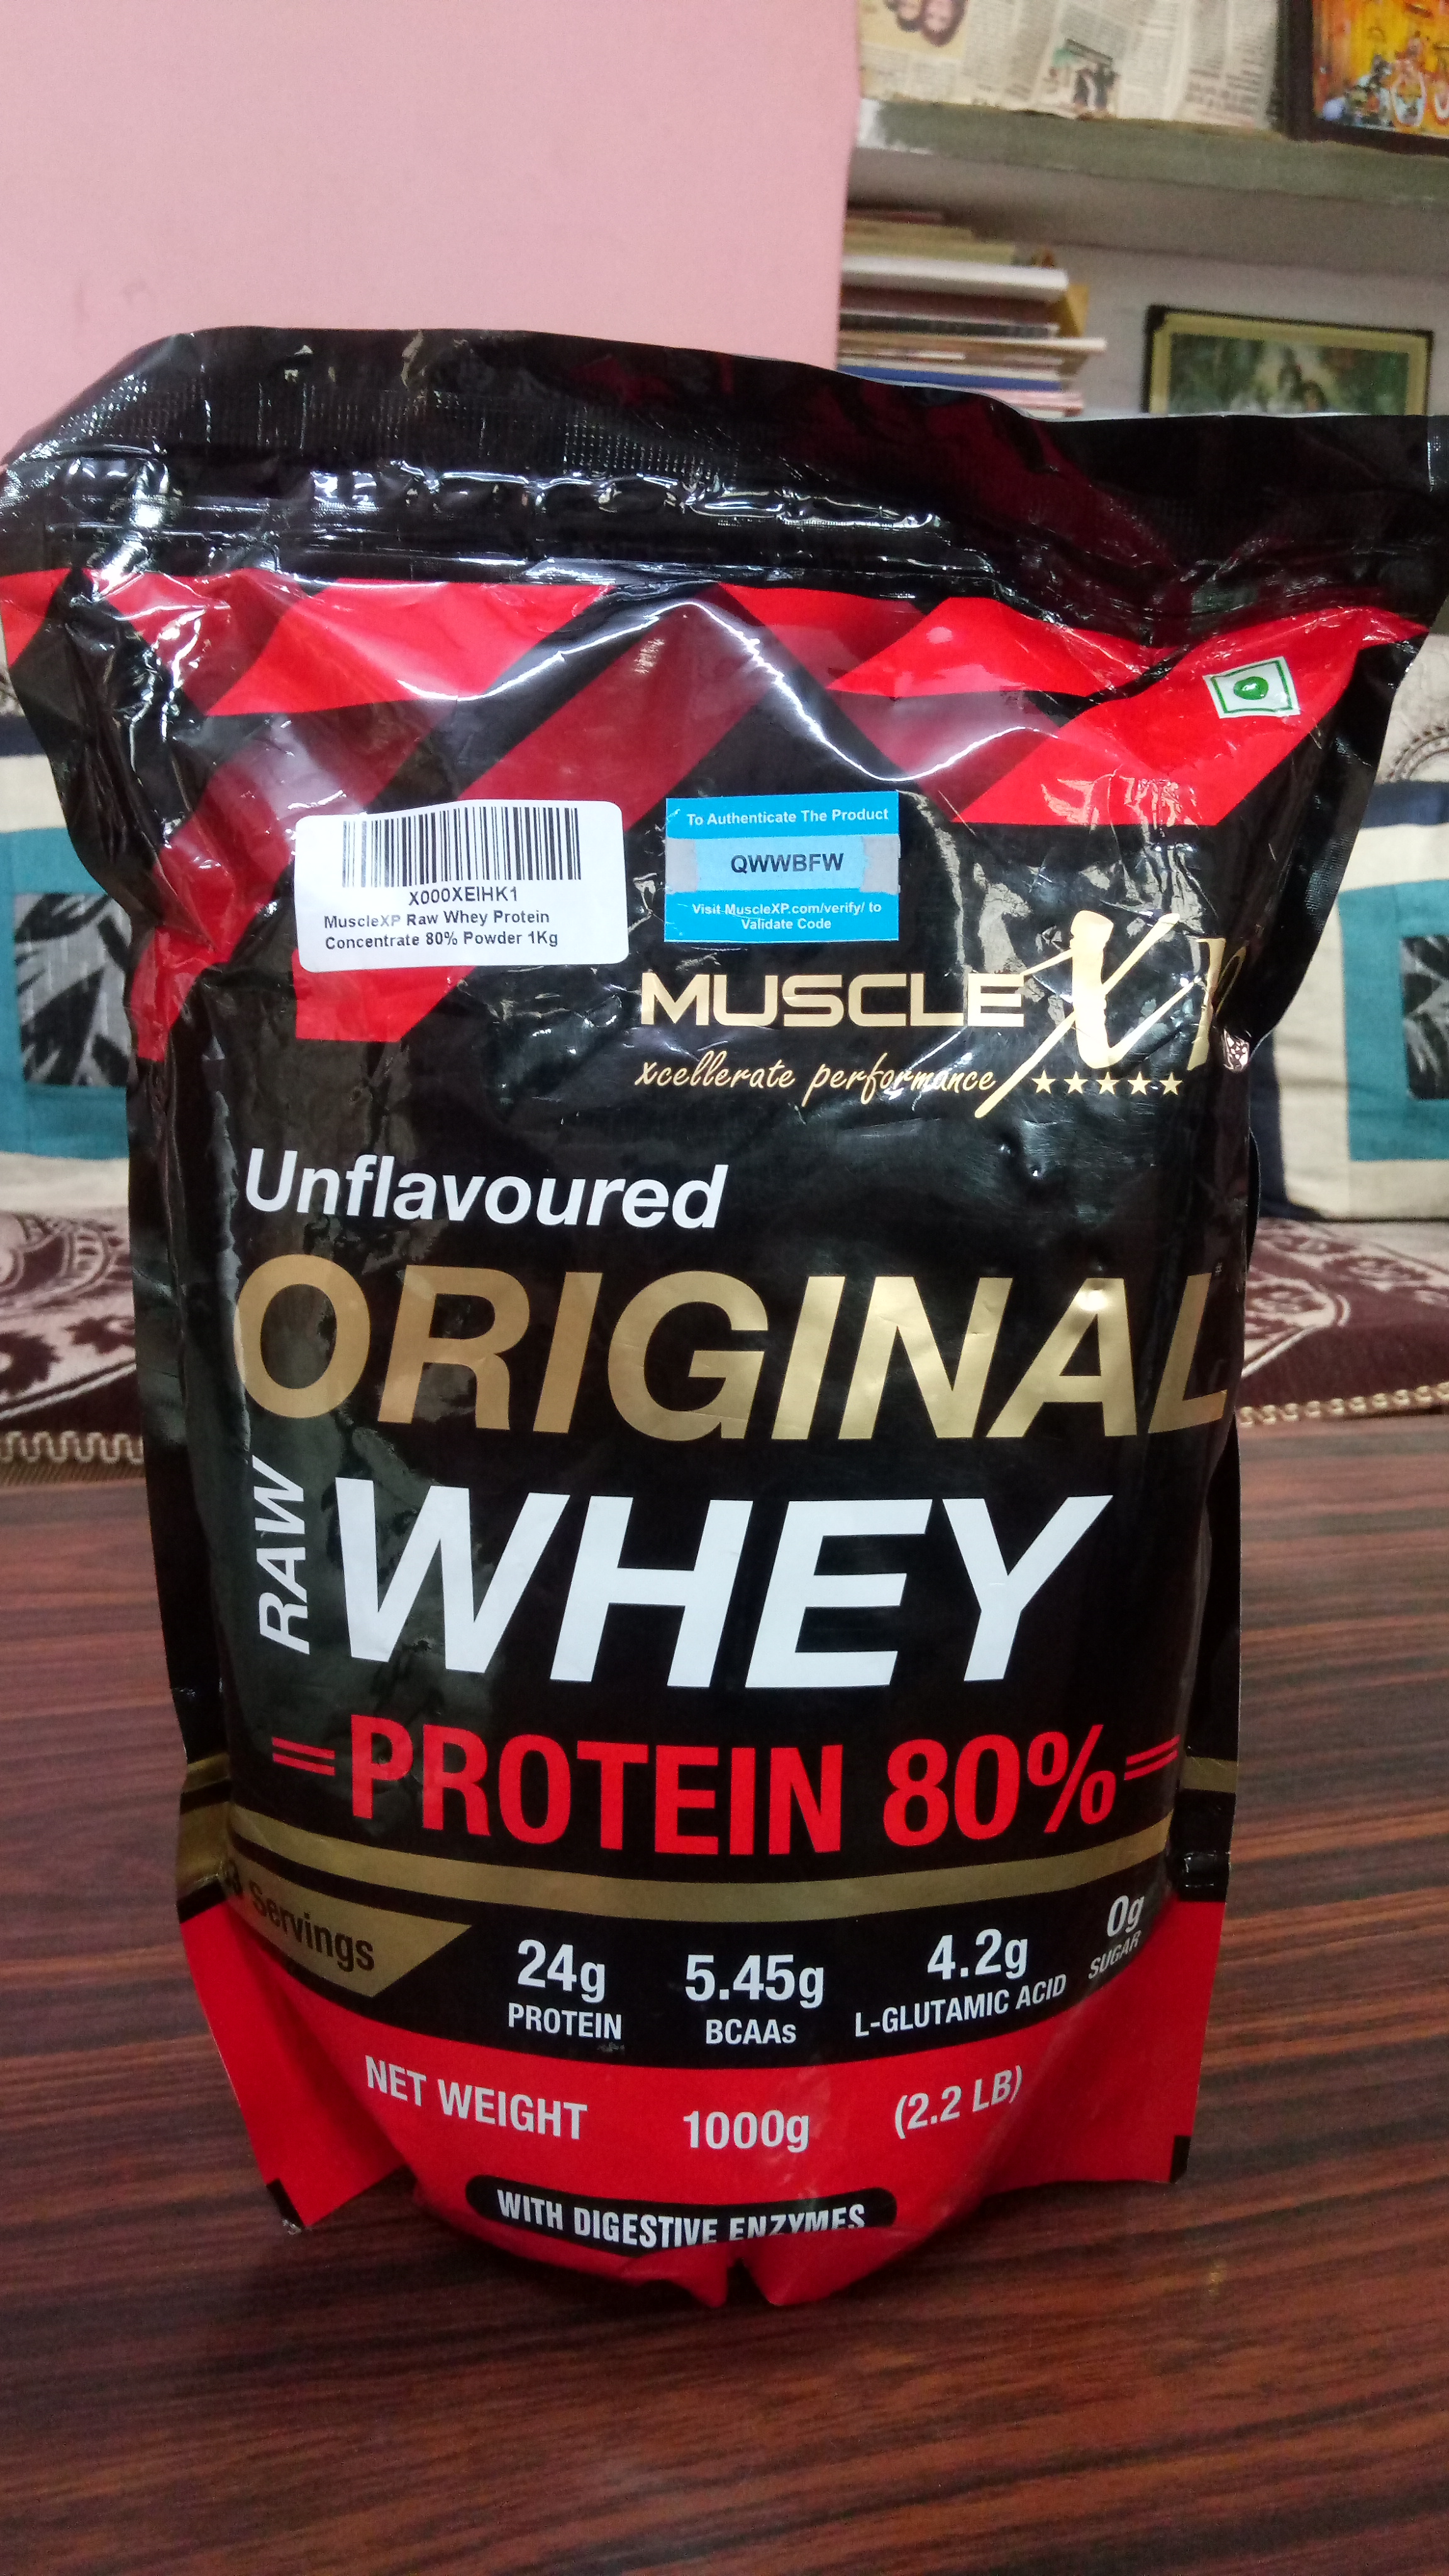 MuscleXP Raw Whey Protein 80% Powder Unflavoured-Awesome Whey Protein-By deepaksoni